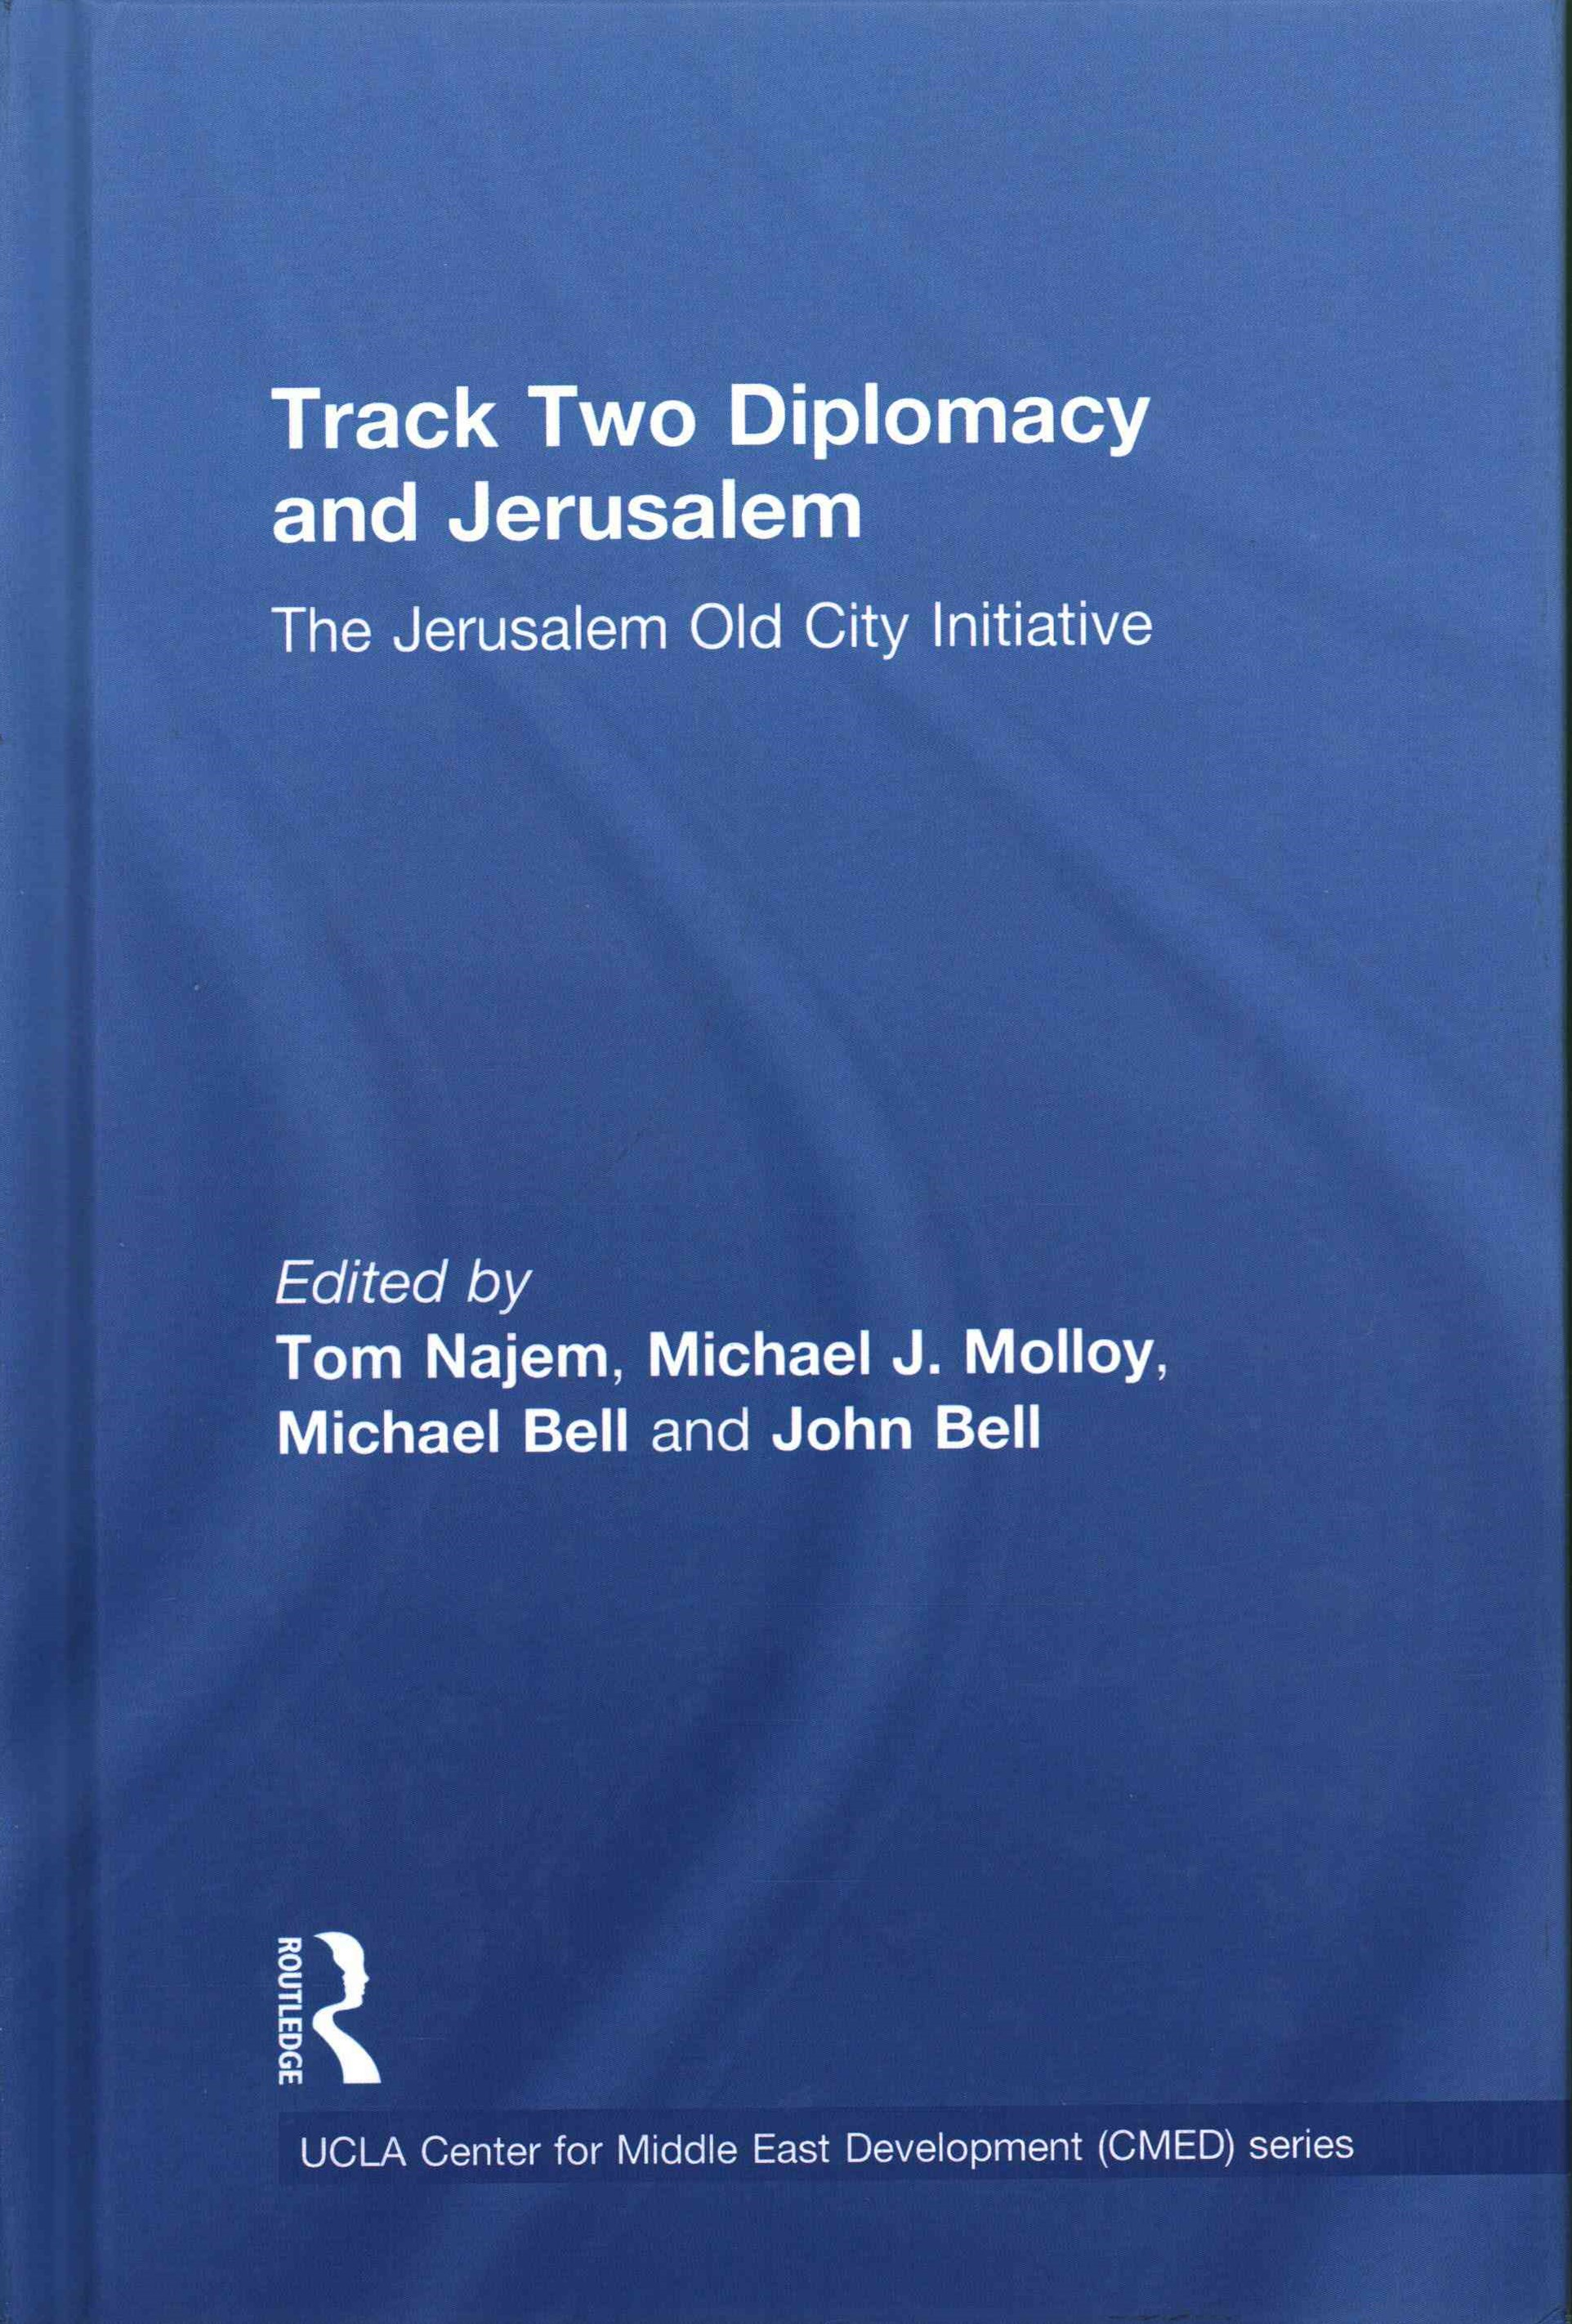 Track Two Diplomacy and Jerusalem